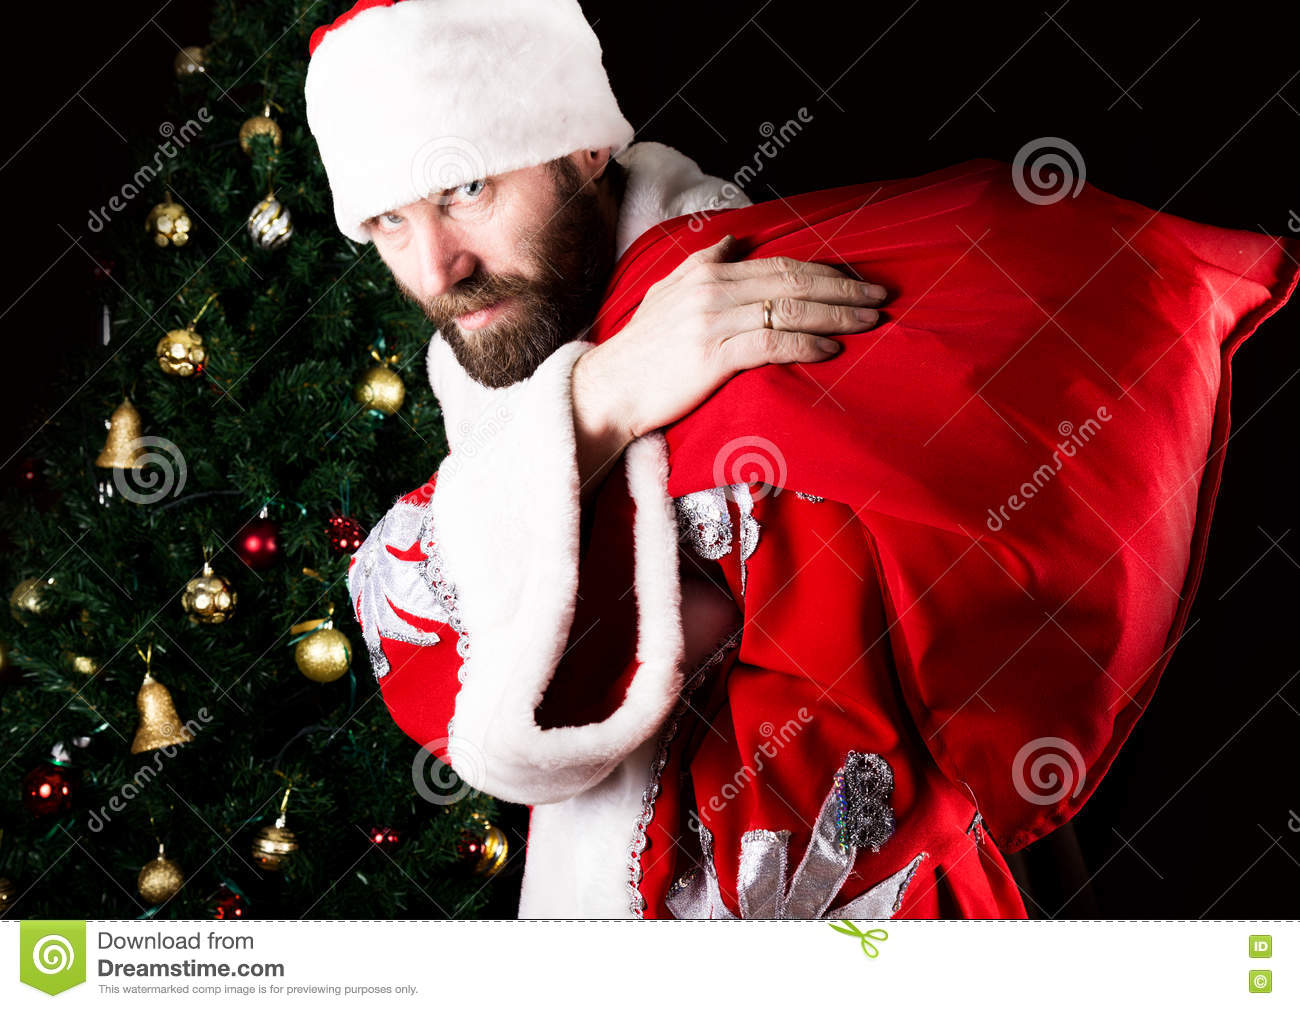 Bad brutal Santa Claus carries a bag and smiling spitefully, on the background of Christmas tree